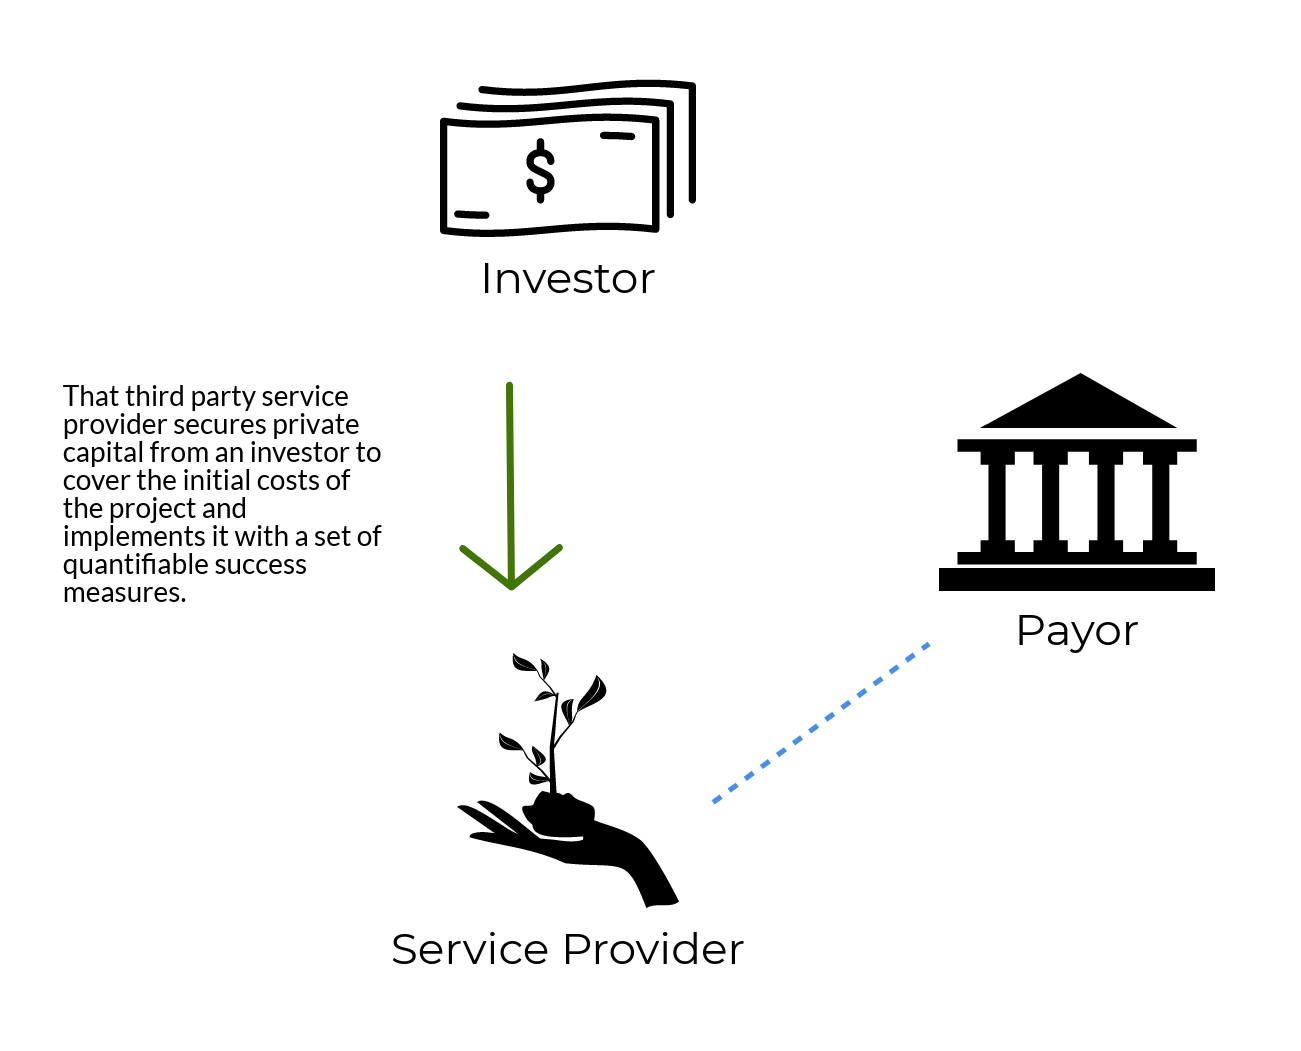 Step 2: That third party service provider secures private capital from an investor to cover the initial costs of the project and implements it with a set of quantifiable success measures. Graphic courtesy: Environmental Incentives